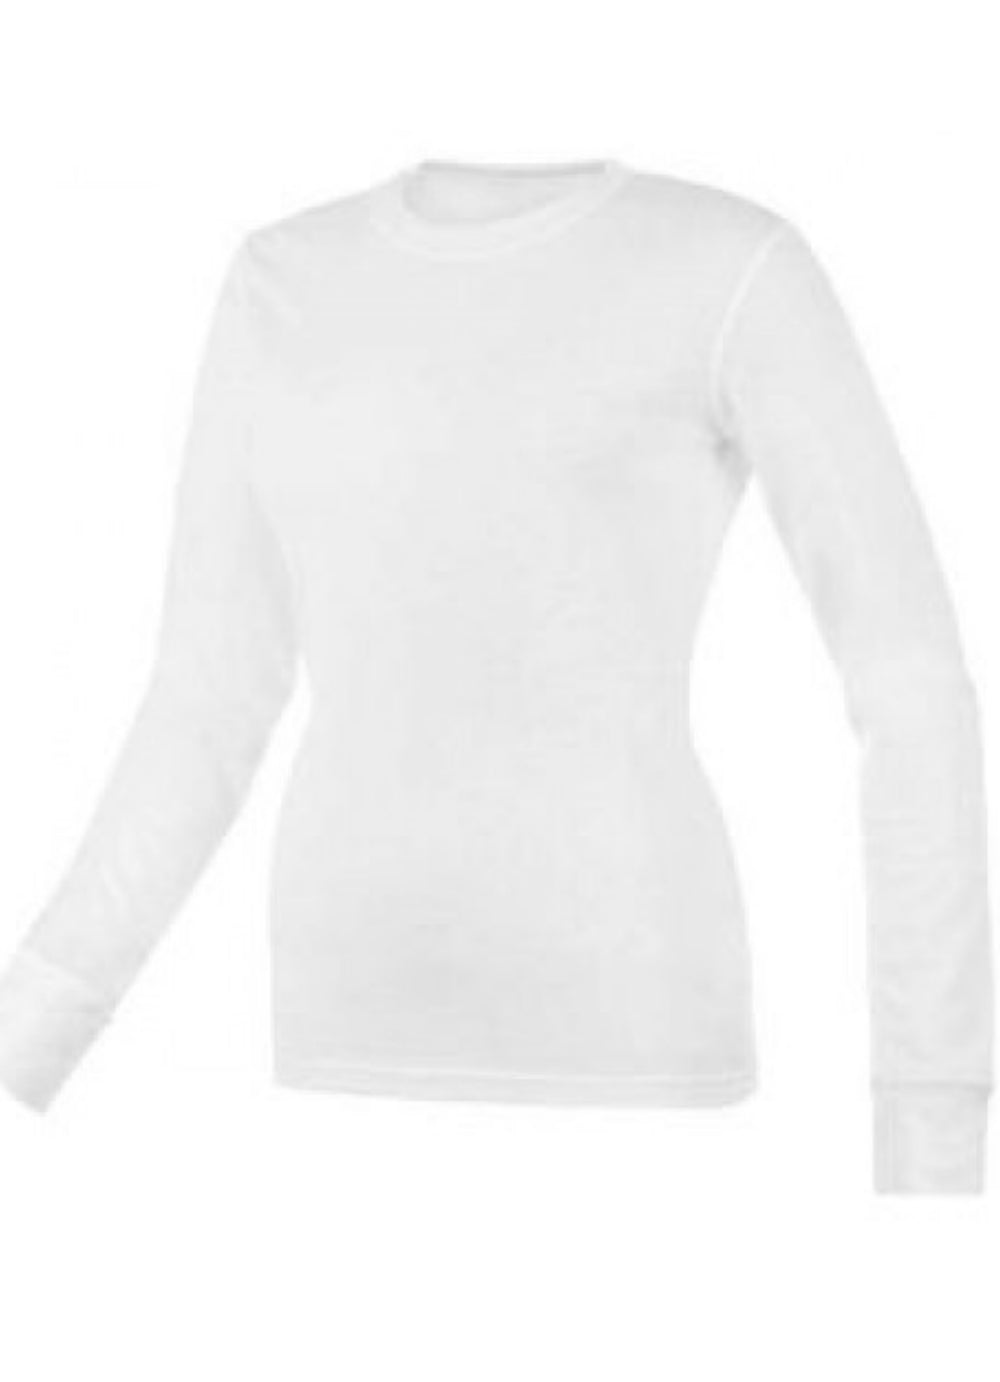 Solid White Thermal